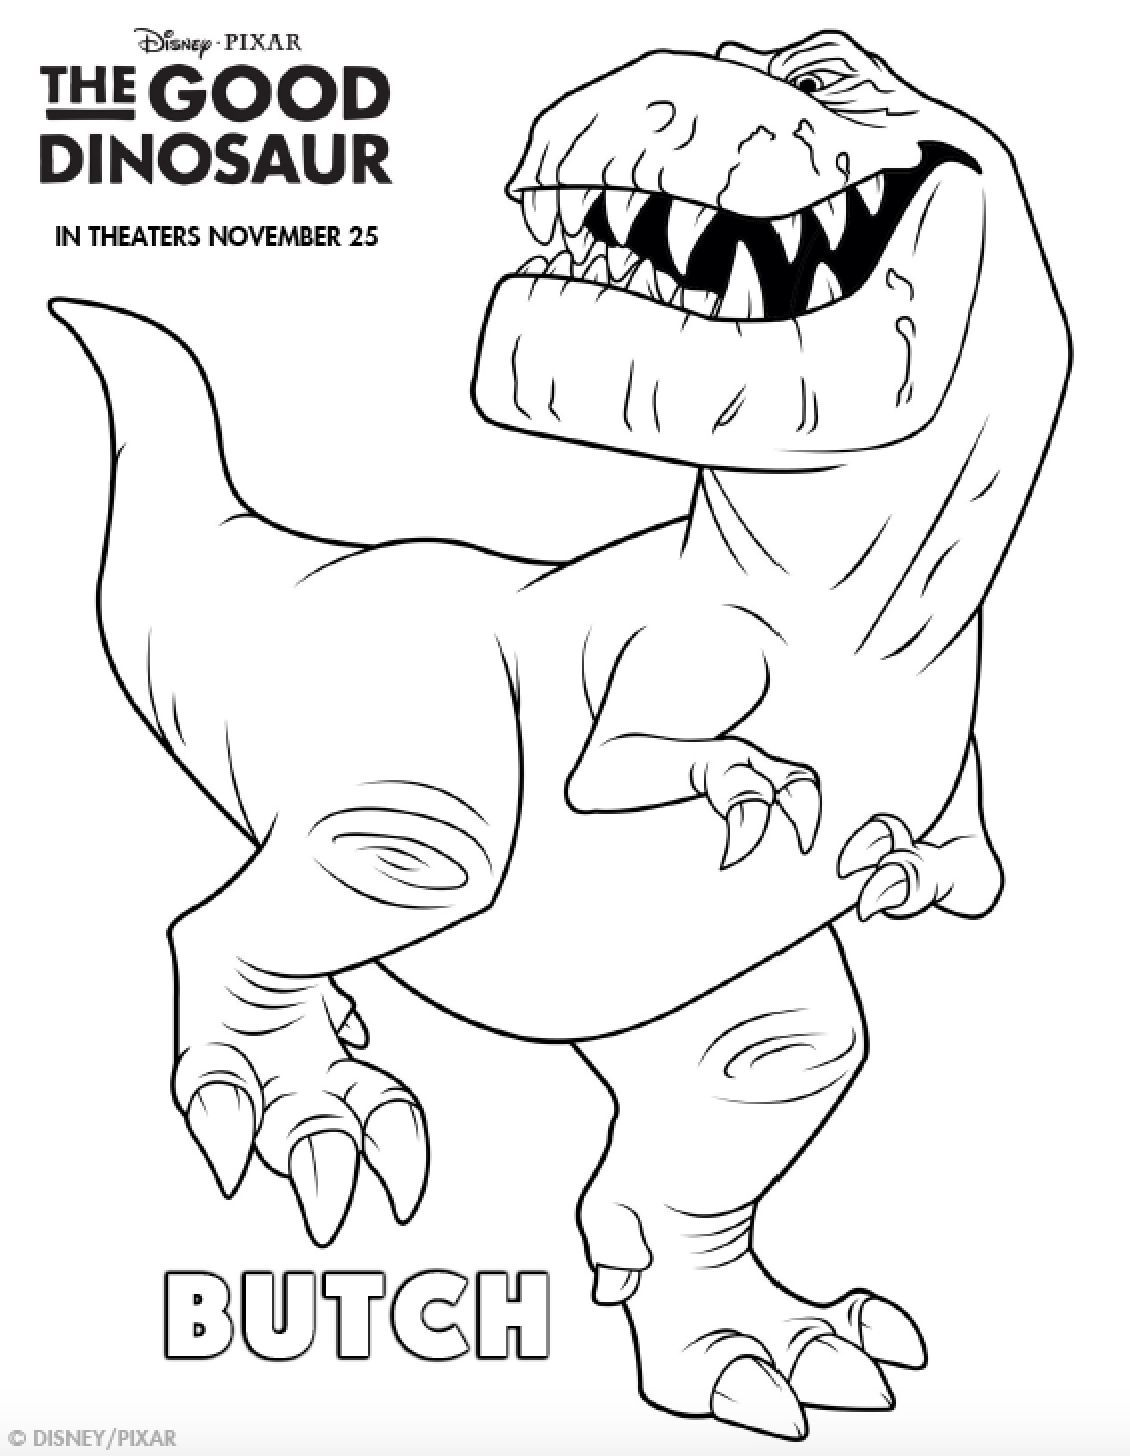 The Good Dinosaur Coloring Pages | Pinterest